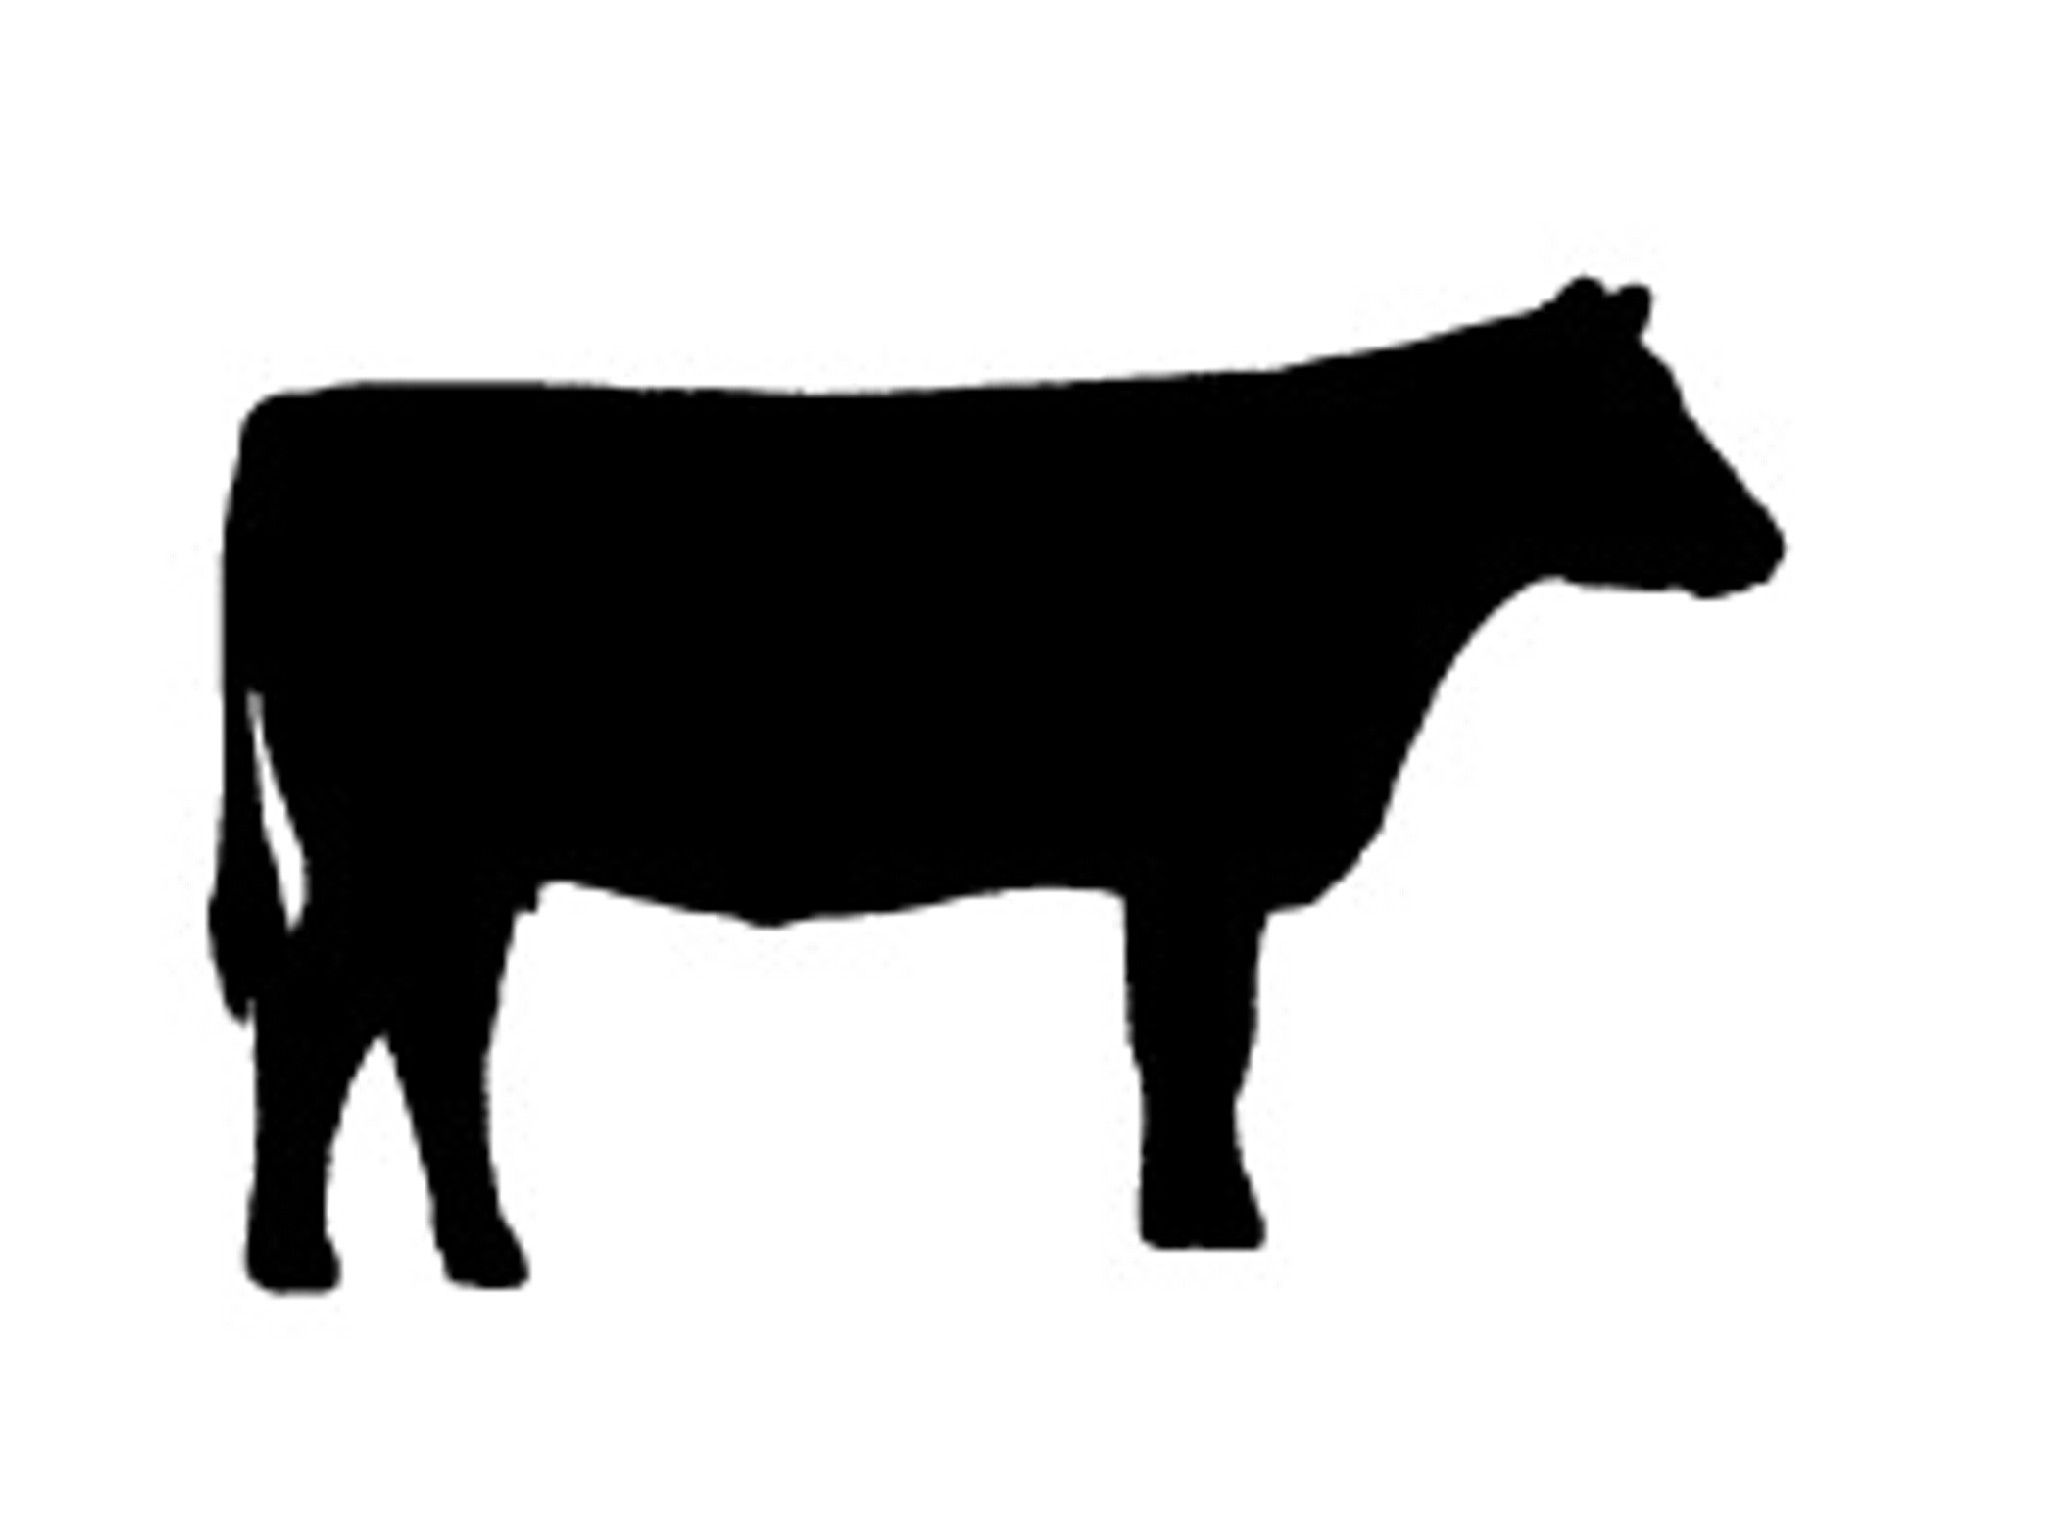 buncombe county 4 h kiwanis calf chain clip art cow and silhouettes rh pinterest com au cow clip art free images cow clip art black and white